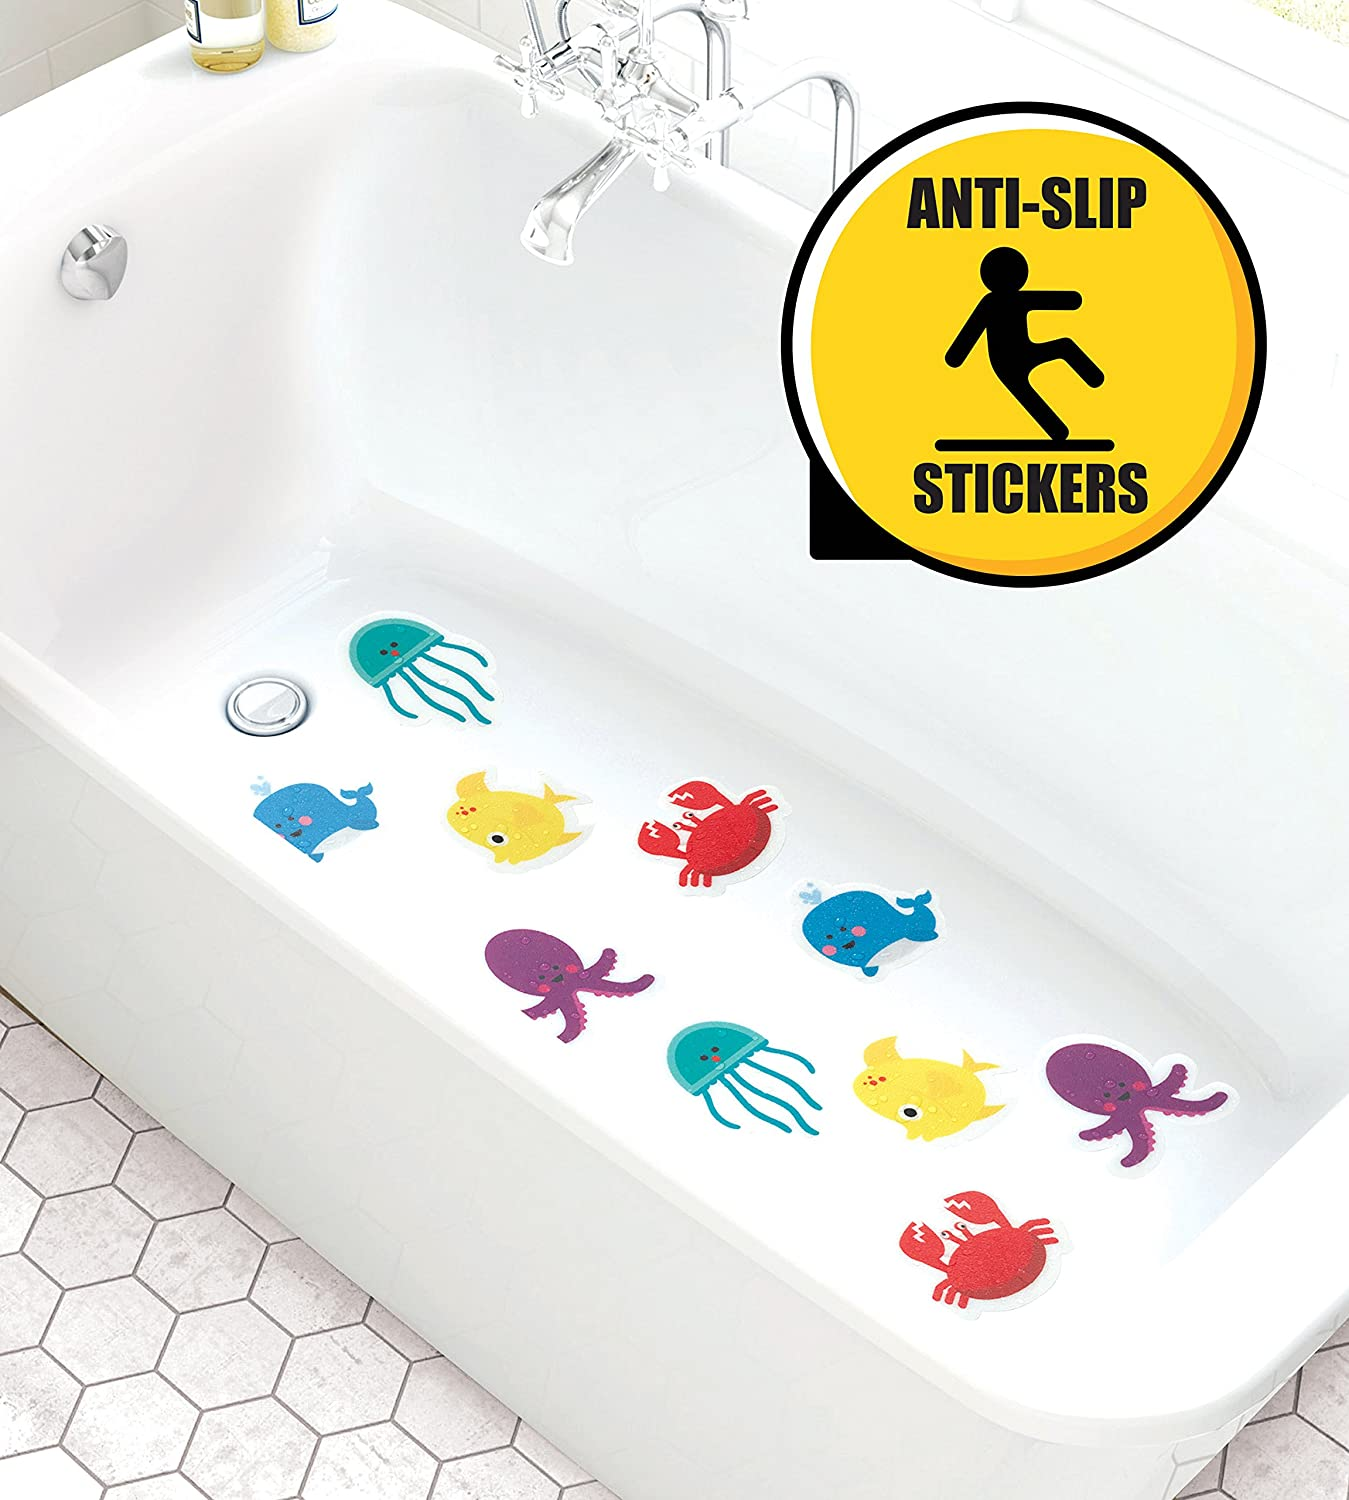 size grips handyman things bathtub all buying bathroom tub family to new when view consider a shutterstock